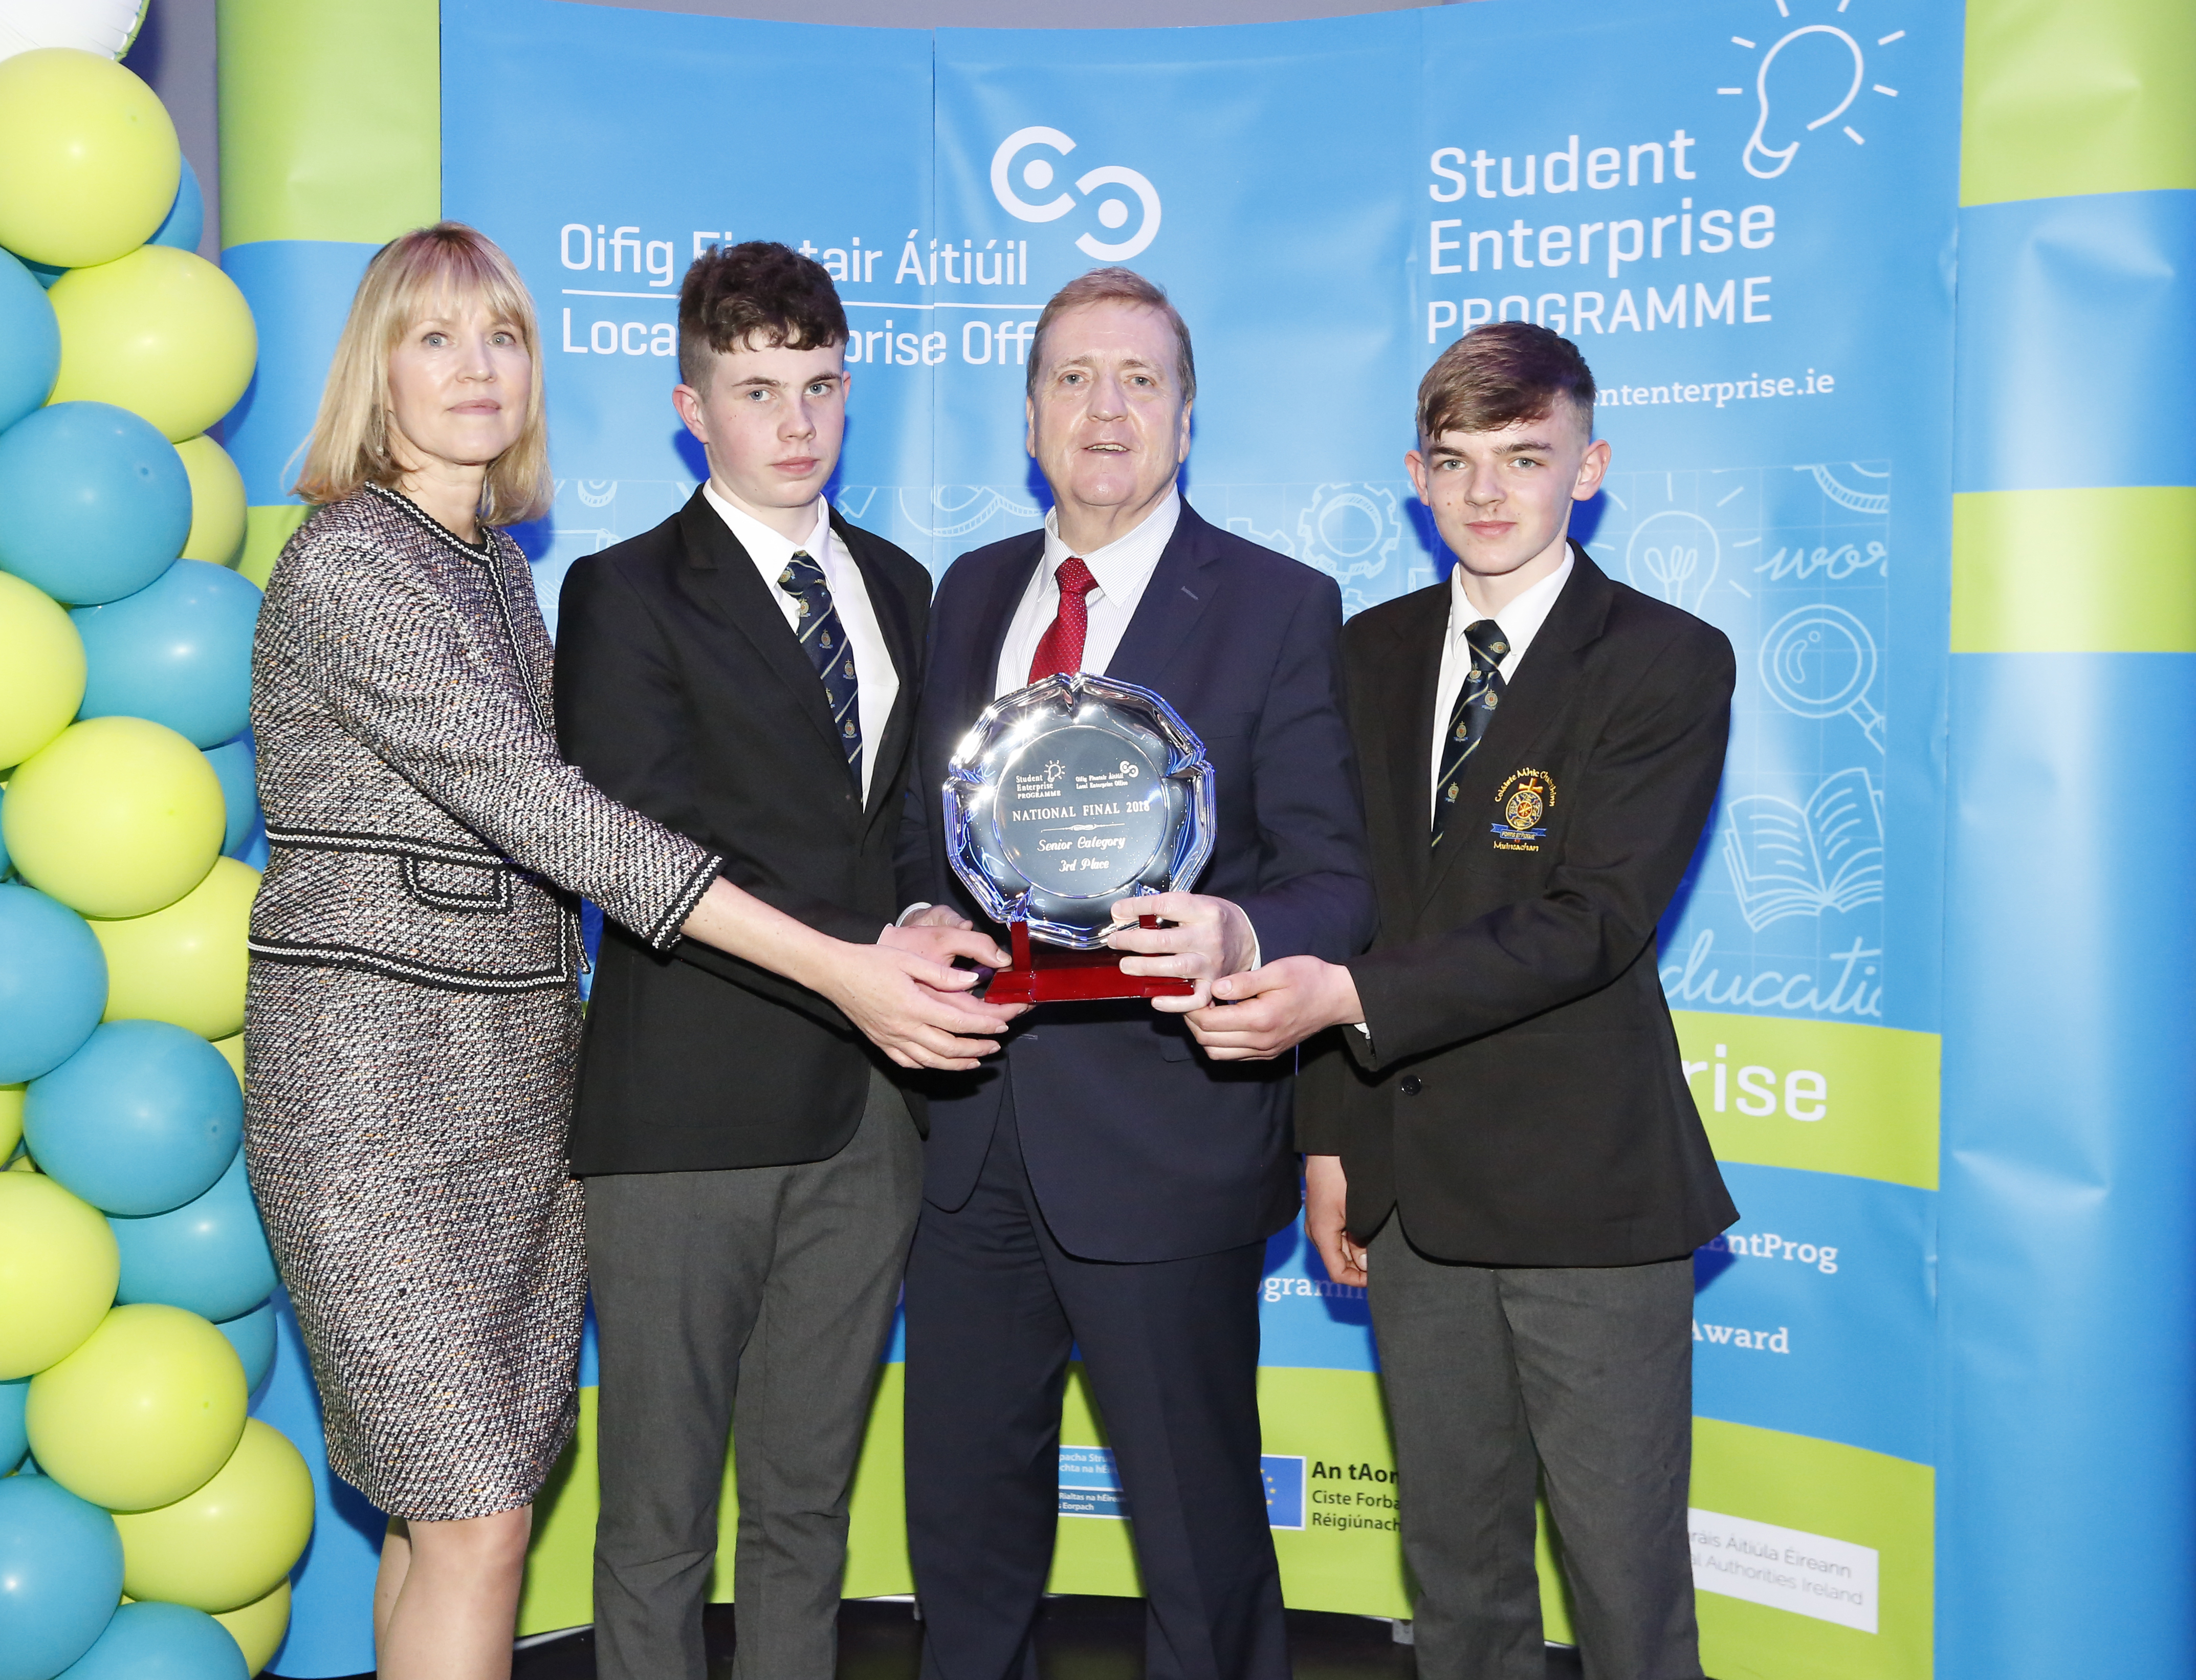 Minister-Pat-breen-presents-prize-to-students-from-St-Macartans-College-Monaghan